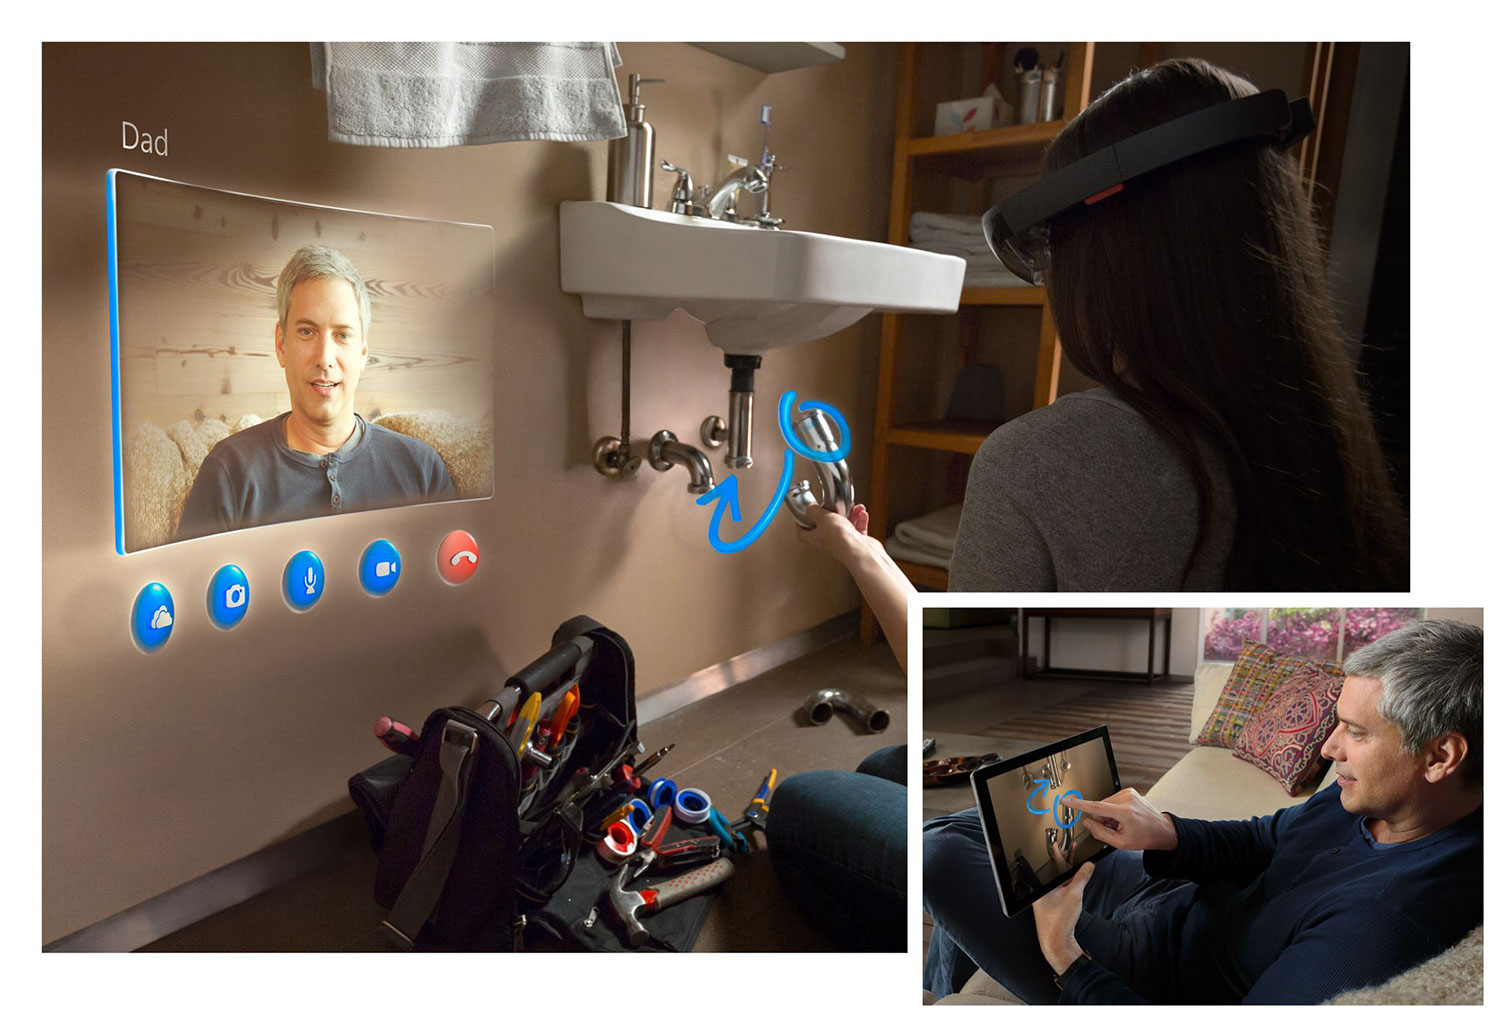 Microsoft HoloLens: Concept for an augmented reality application